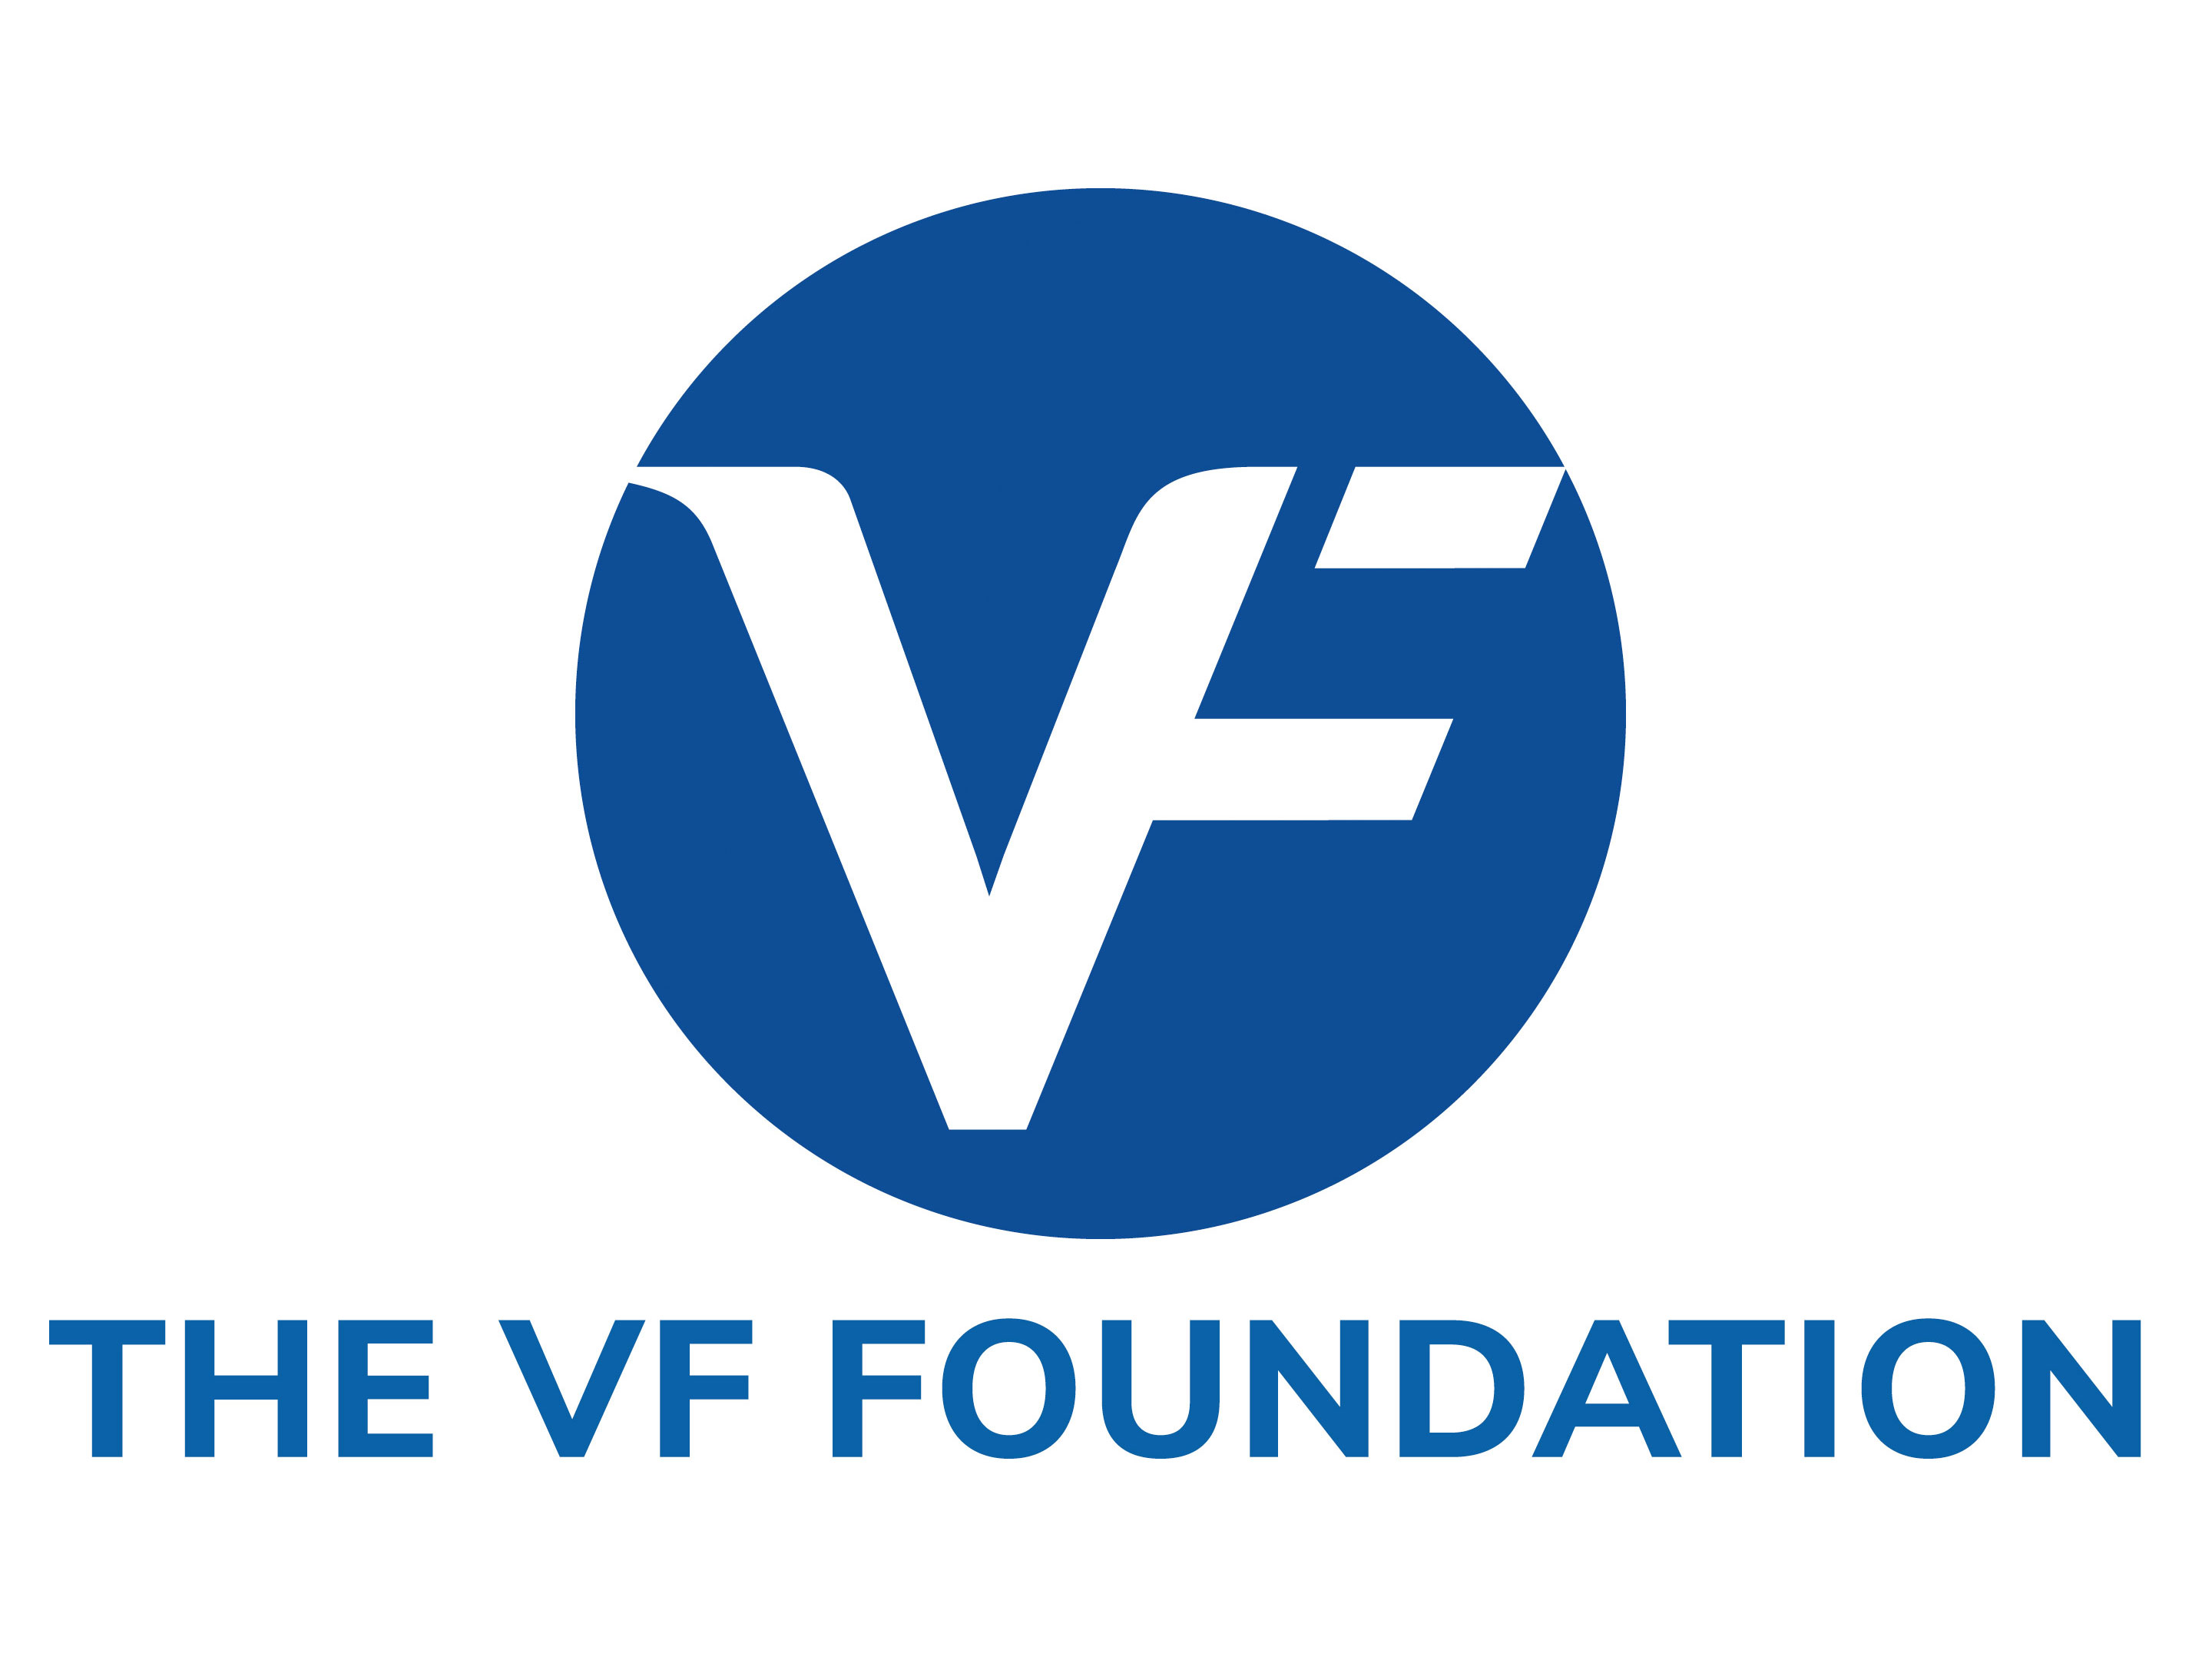 The VF Foundation